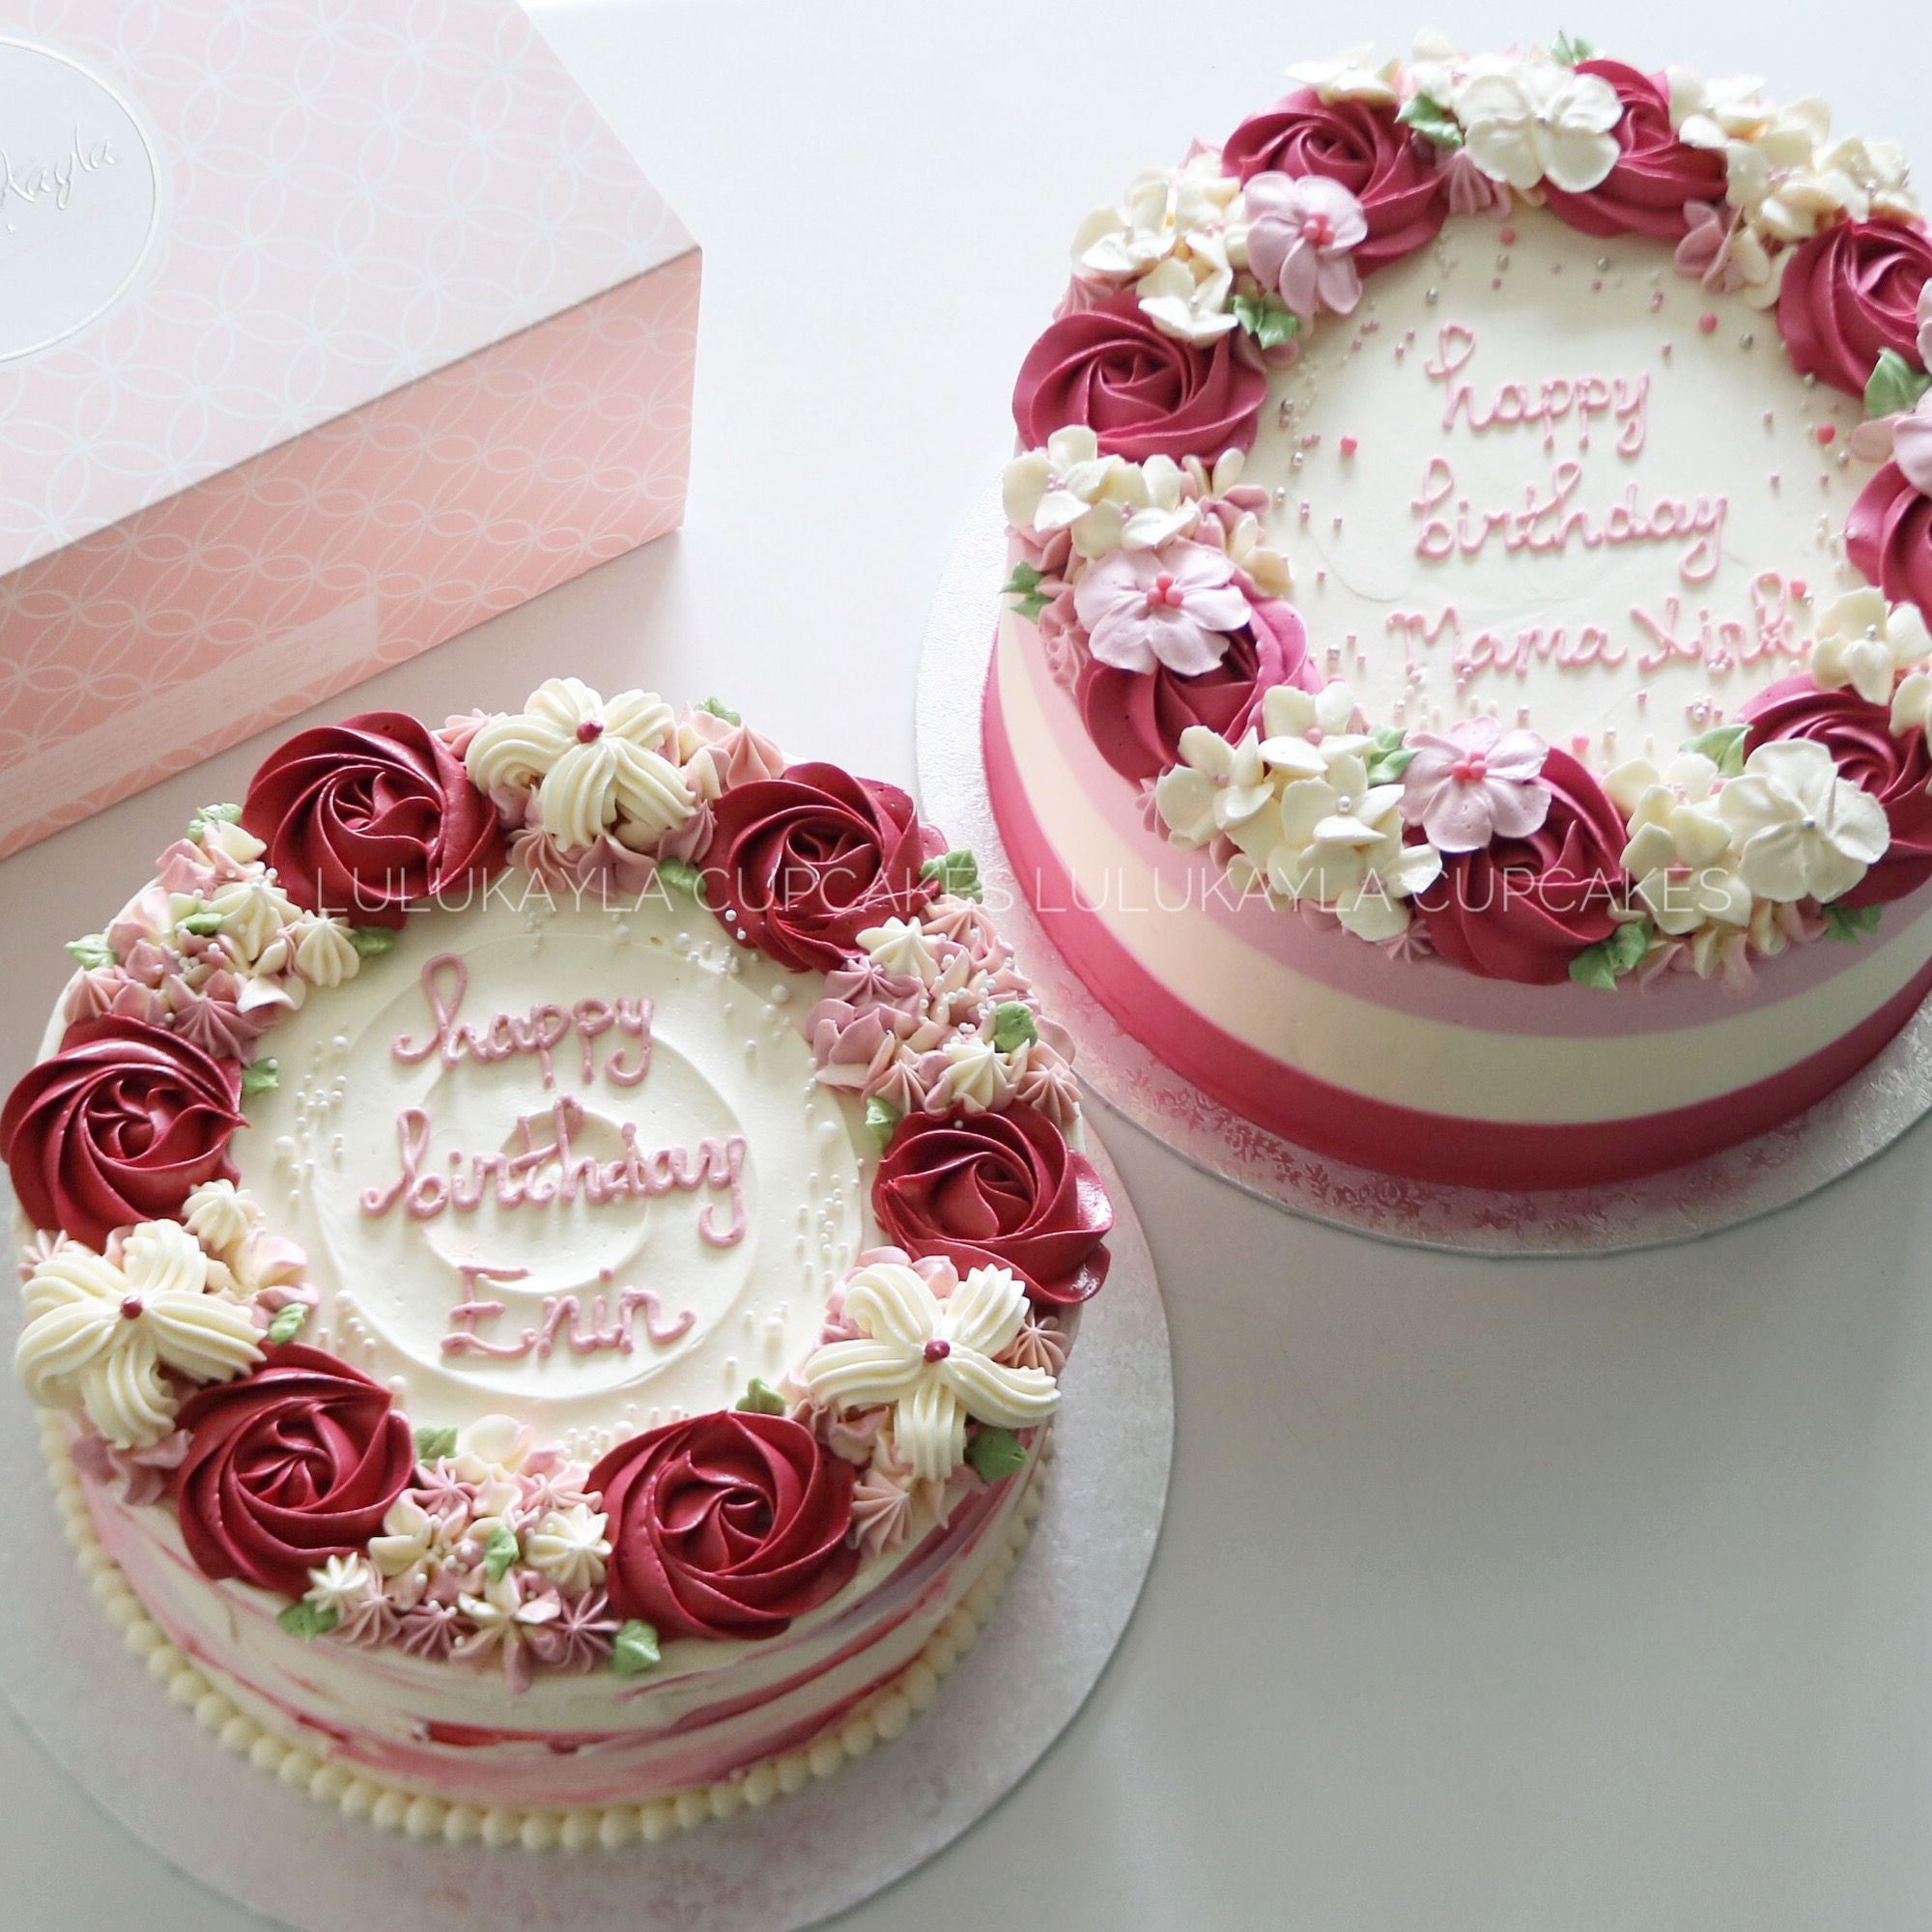 Rose Buttercream Cake Creative Cake Decorating Floral Cake Flower Cake